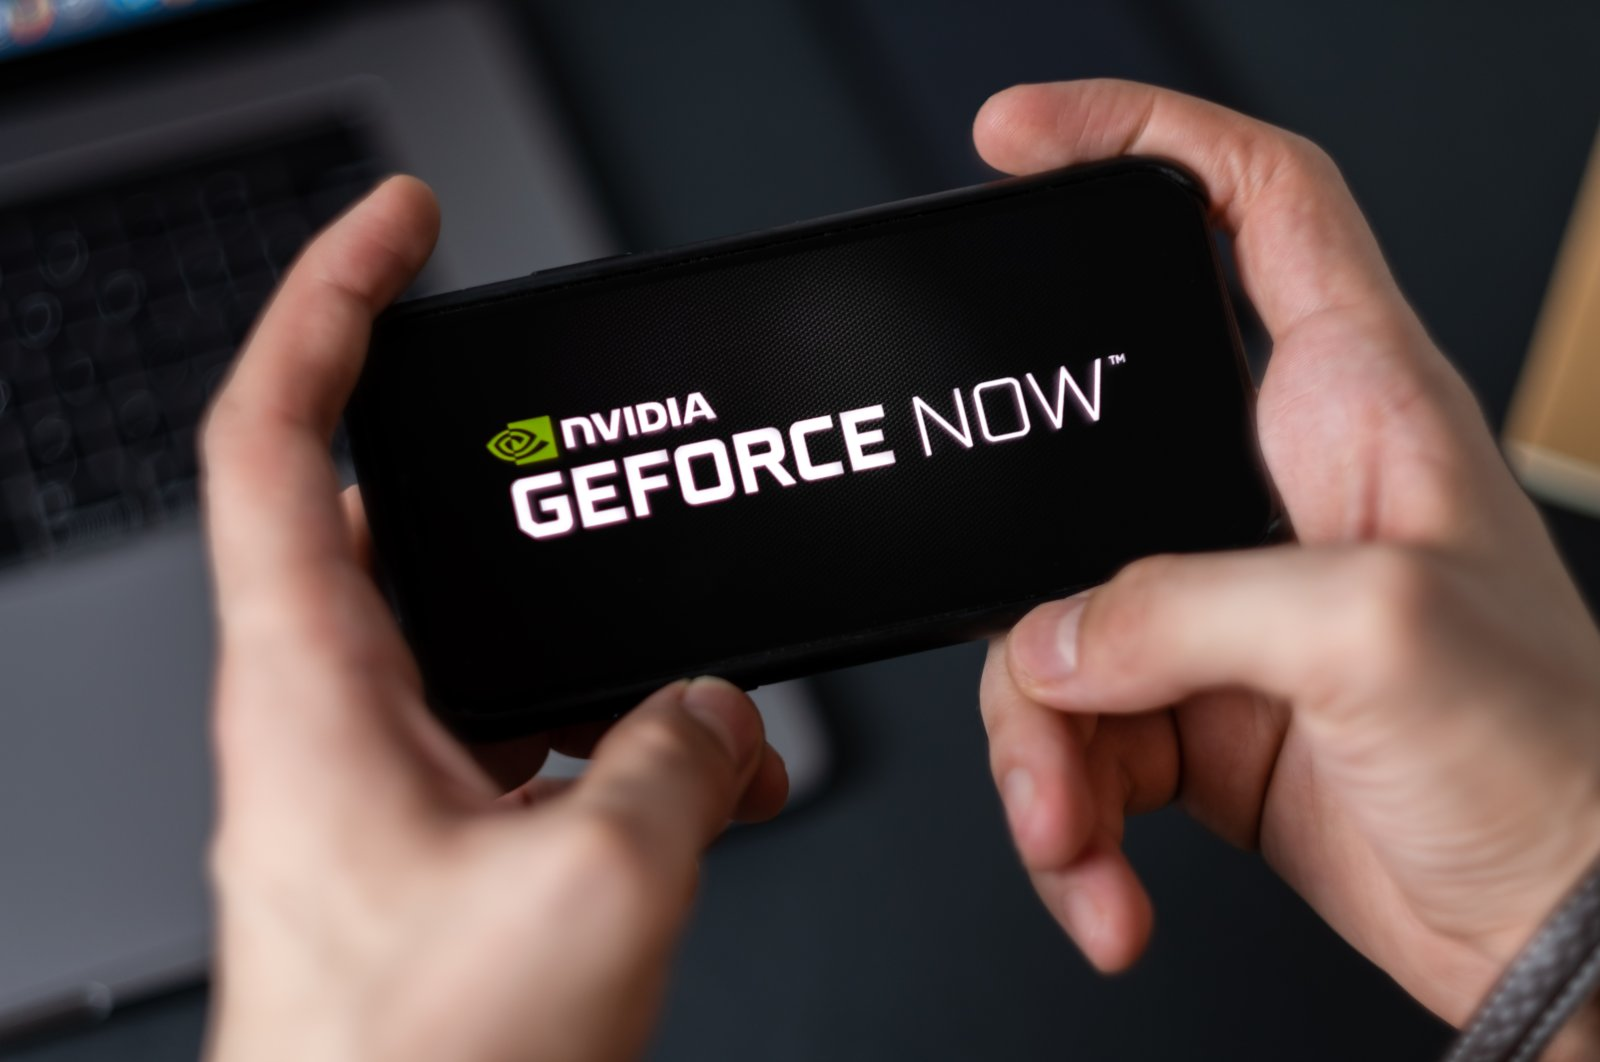 GeForce Now logo is seen on a smartphone screen in this file photo taken in Rostov-on-Don, Russia on Feb. 7, 2020 (Shutterstock Photo)